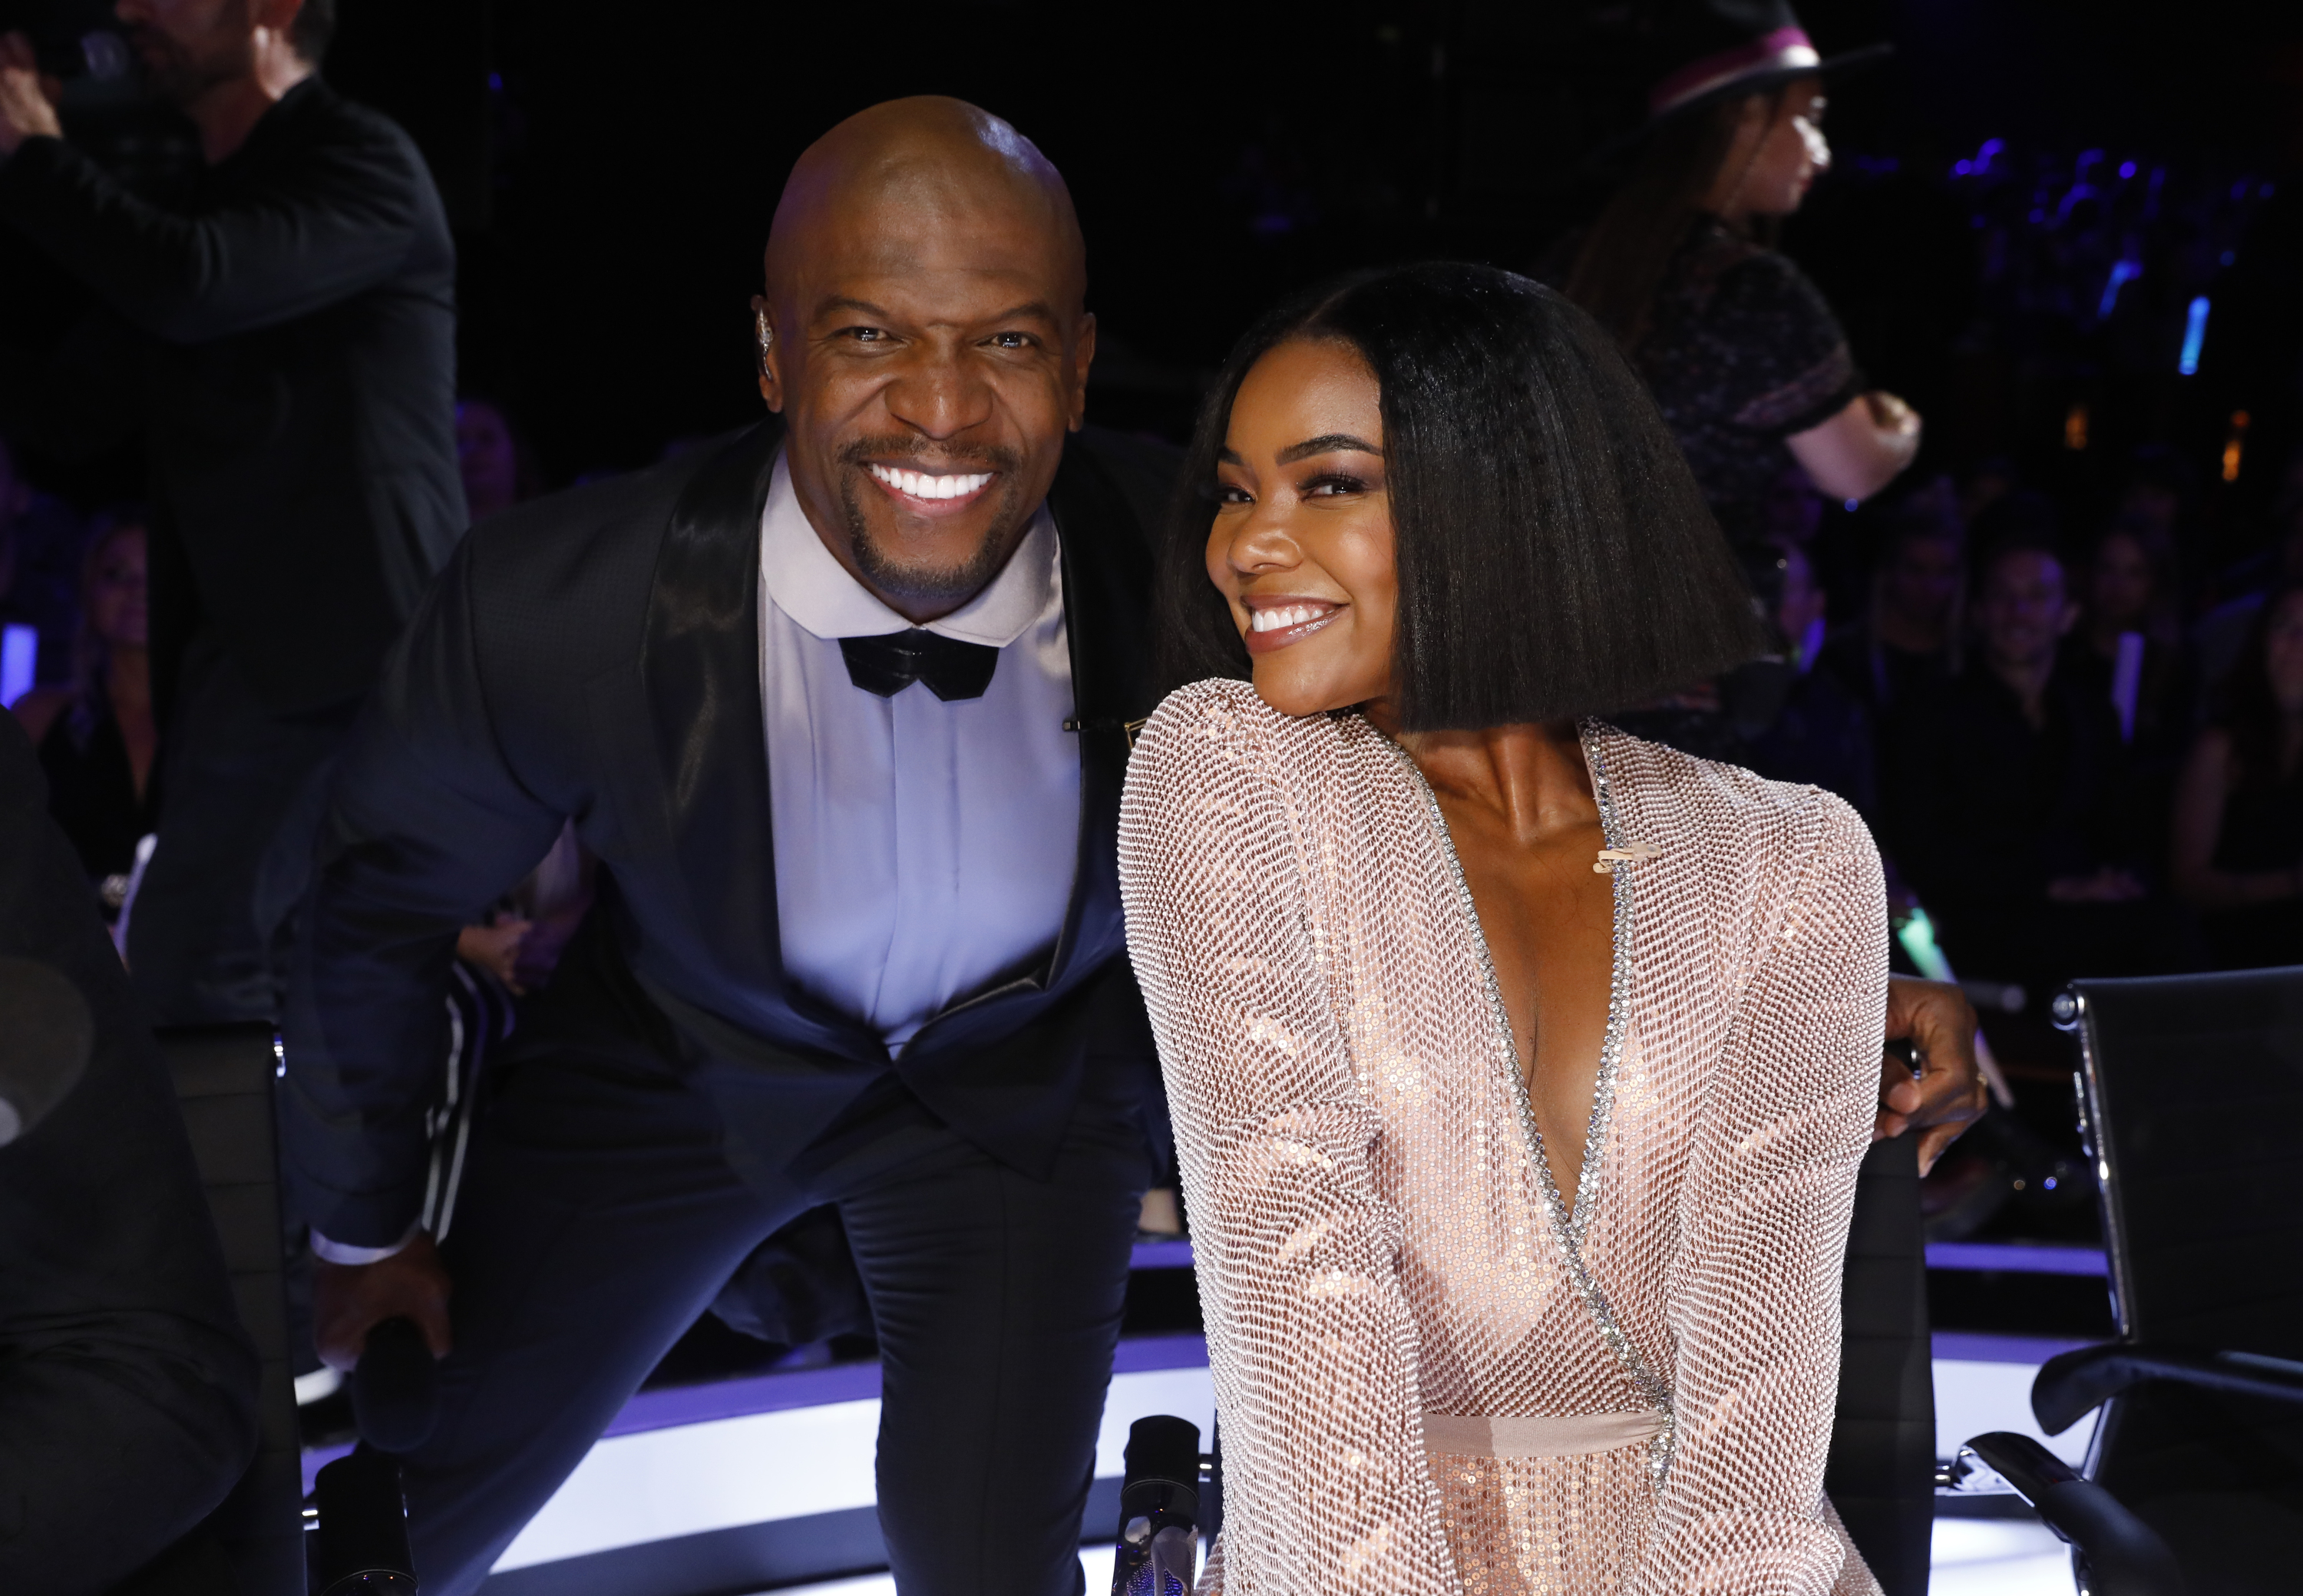 """AMERICA'S GOT TALENT -- """"Live Results Finale"""" Episode 1423 -- Pictured: (l-r) Terry Crews, Gabrielle Union -- (Photo by: Trae Patton/NBCU Photo Bank/NBCUniversal via Getty Images via Getty Images)"""